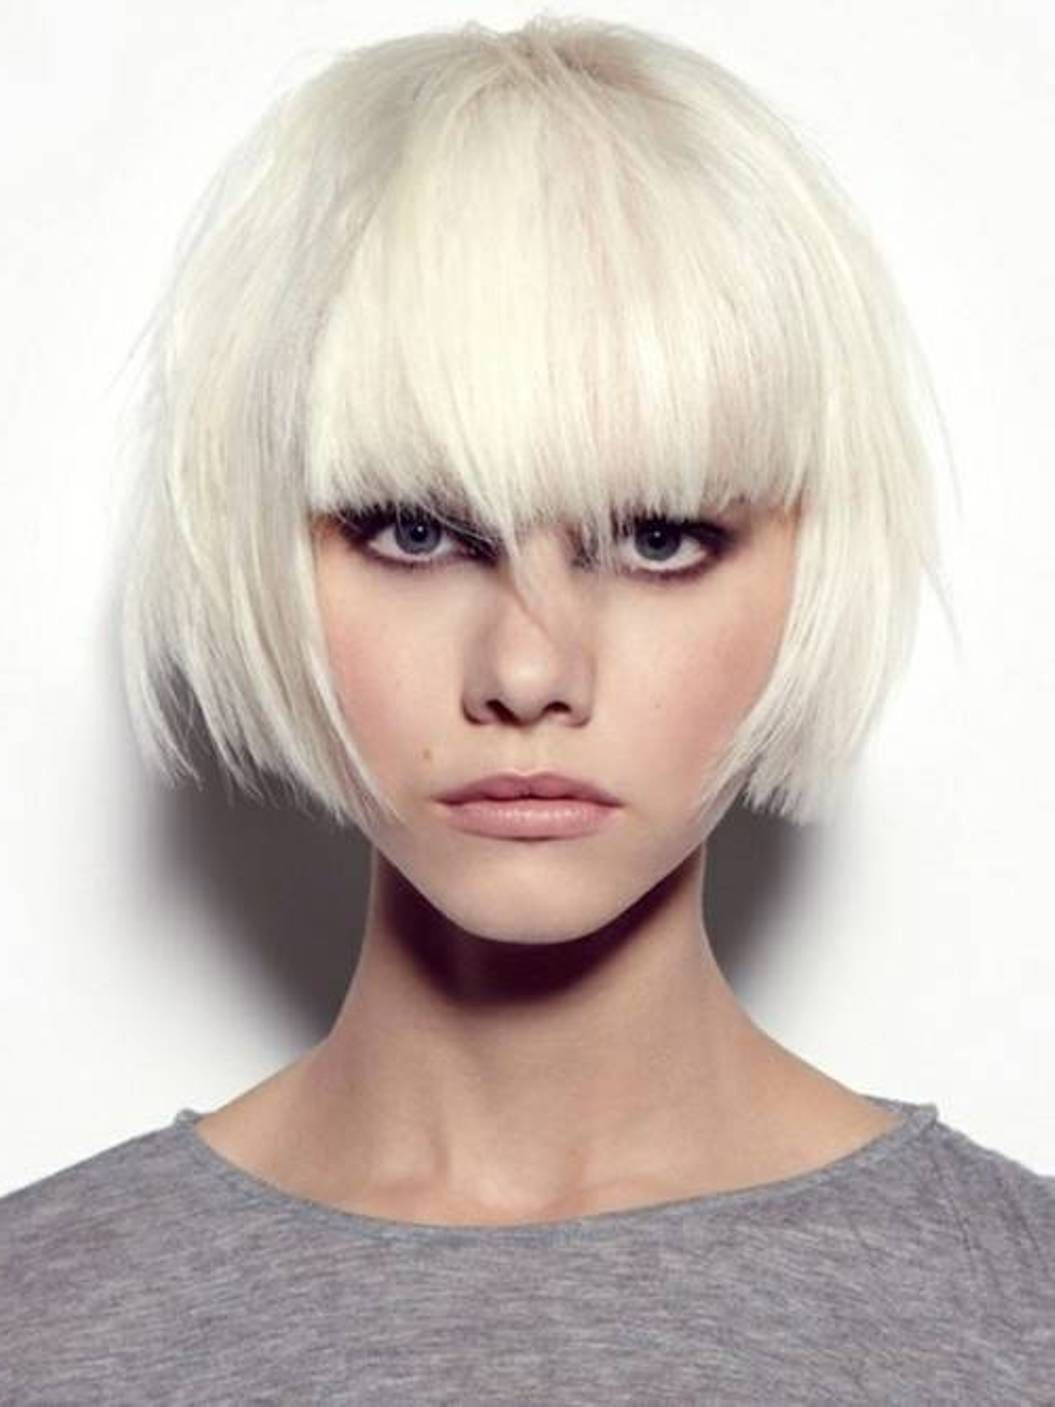 Short blunt bob hairstyle with bangs short hairstyles - Modern 70 S Haircuts For Women Google Search Blunt Bob Haircutsbob Haircut With Bangsmedium